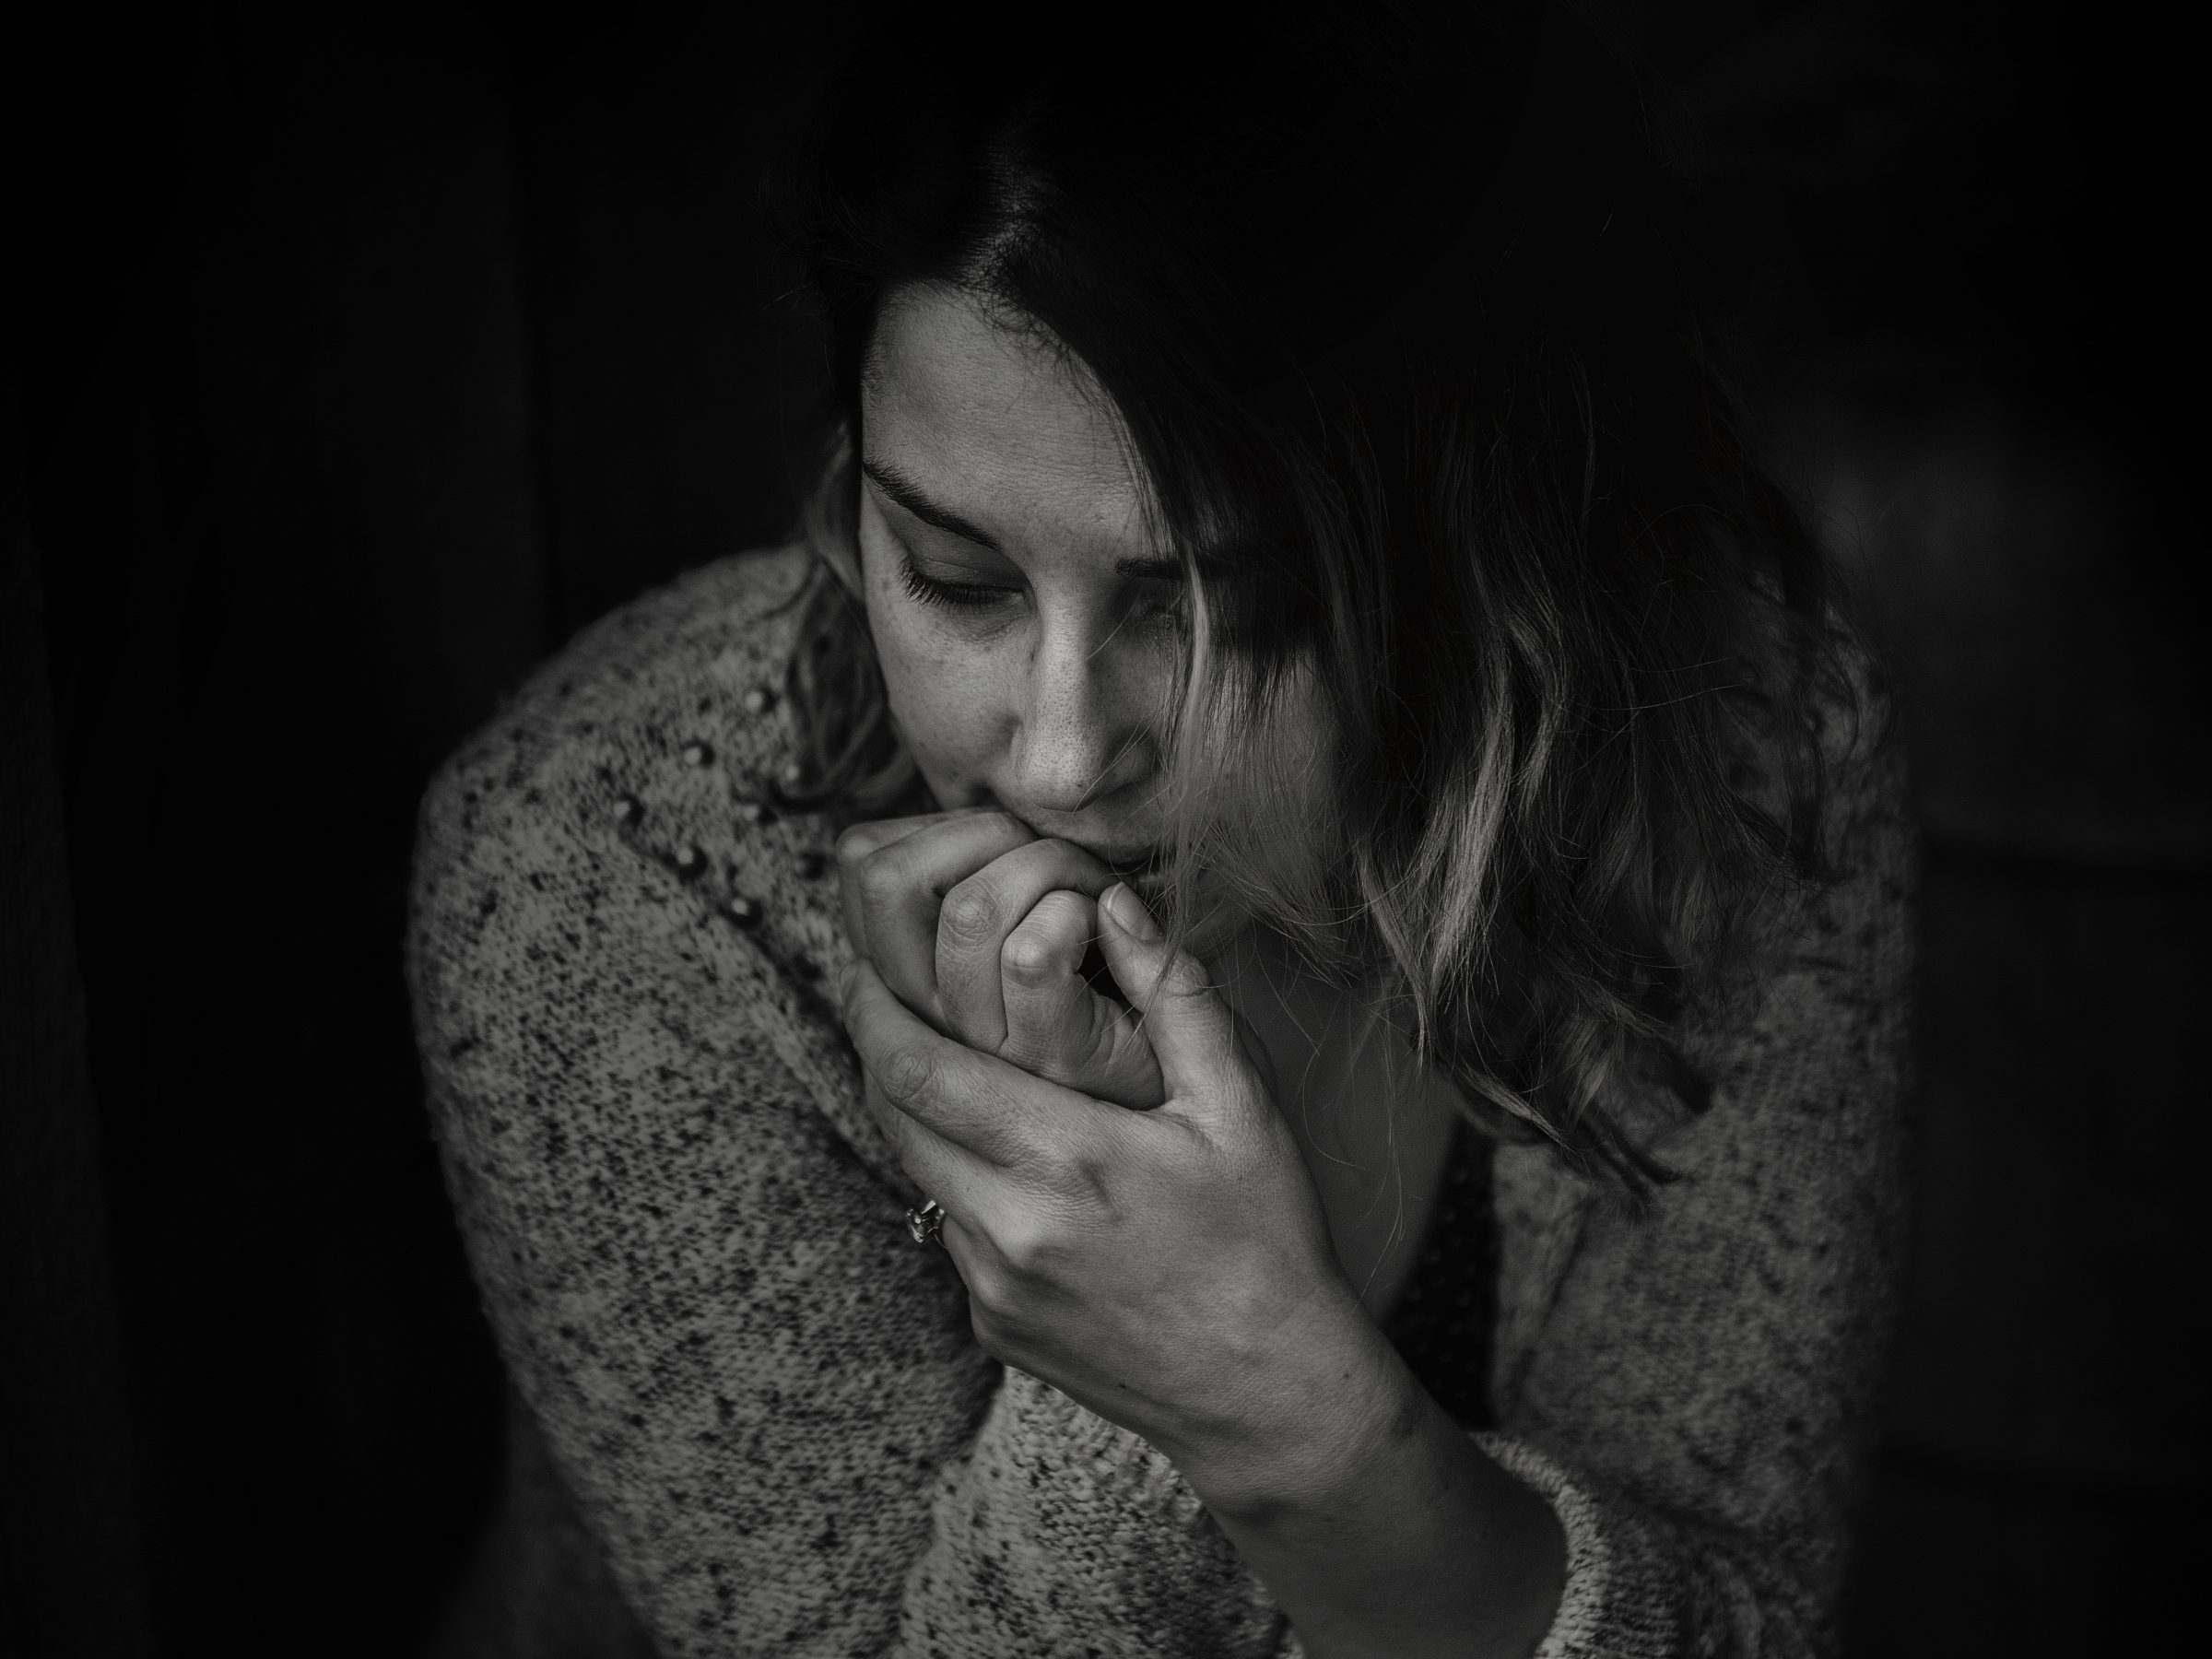 stressed woman biting her nails